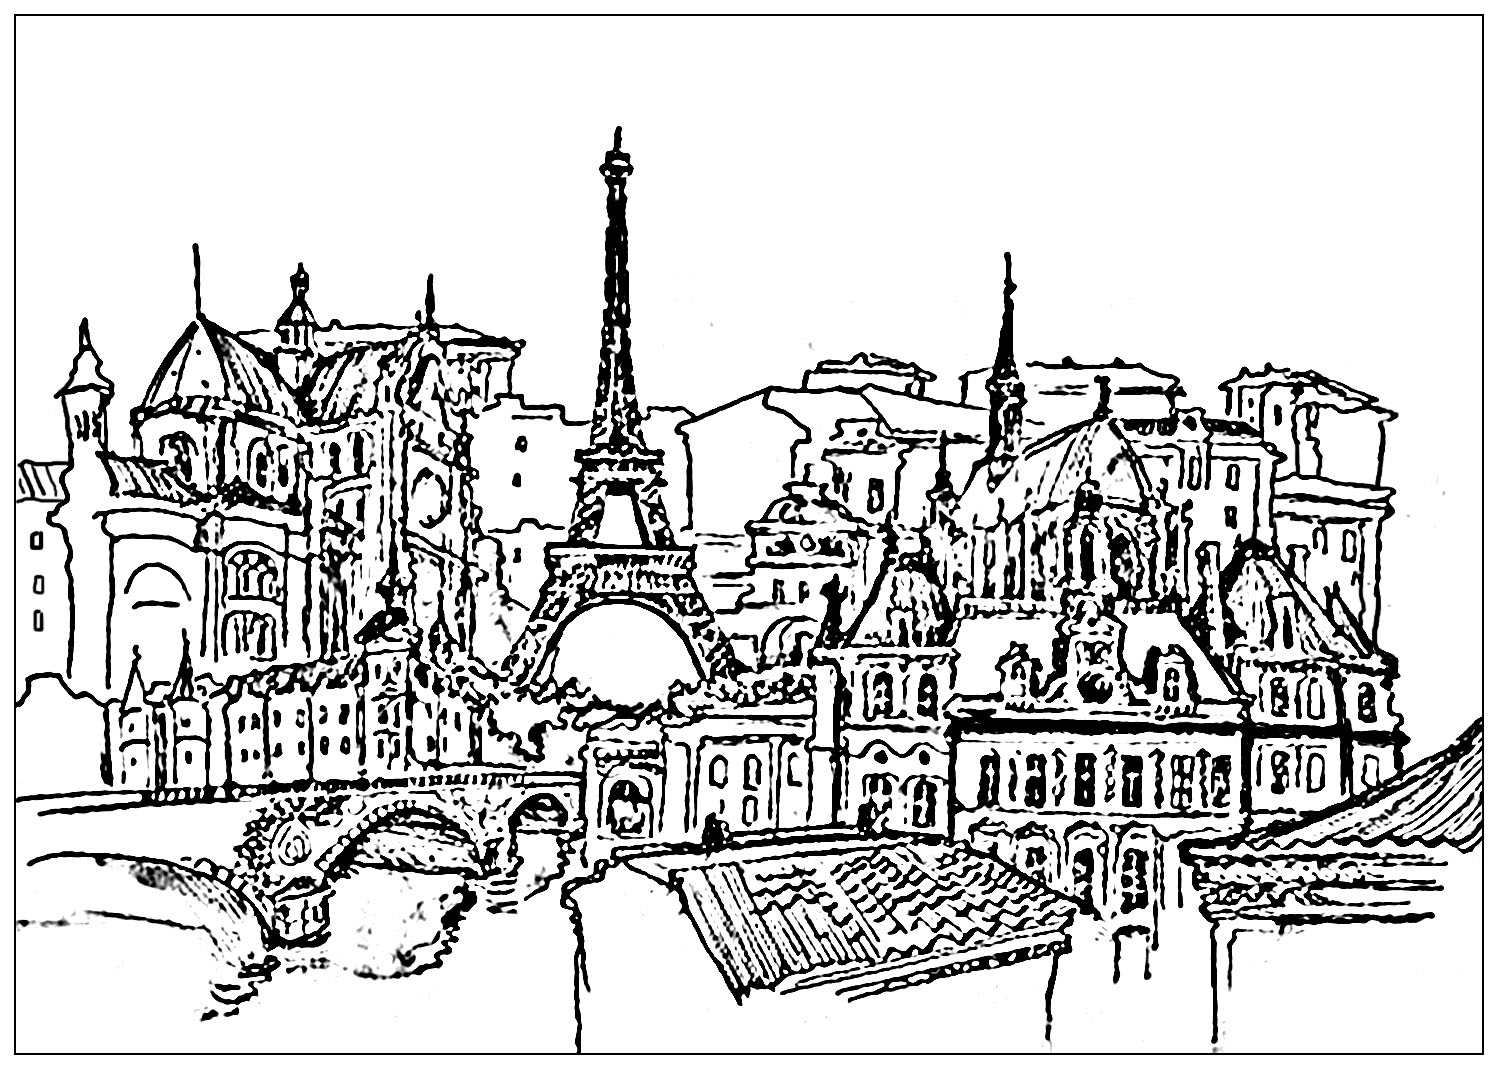 A very complex coloring page of Paris